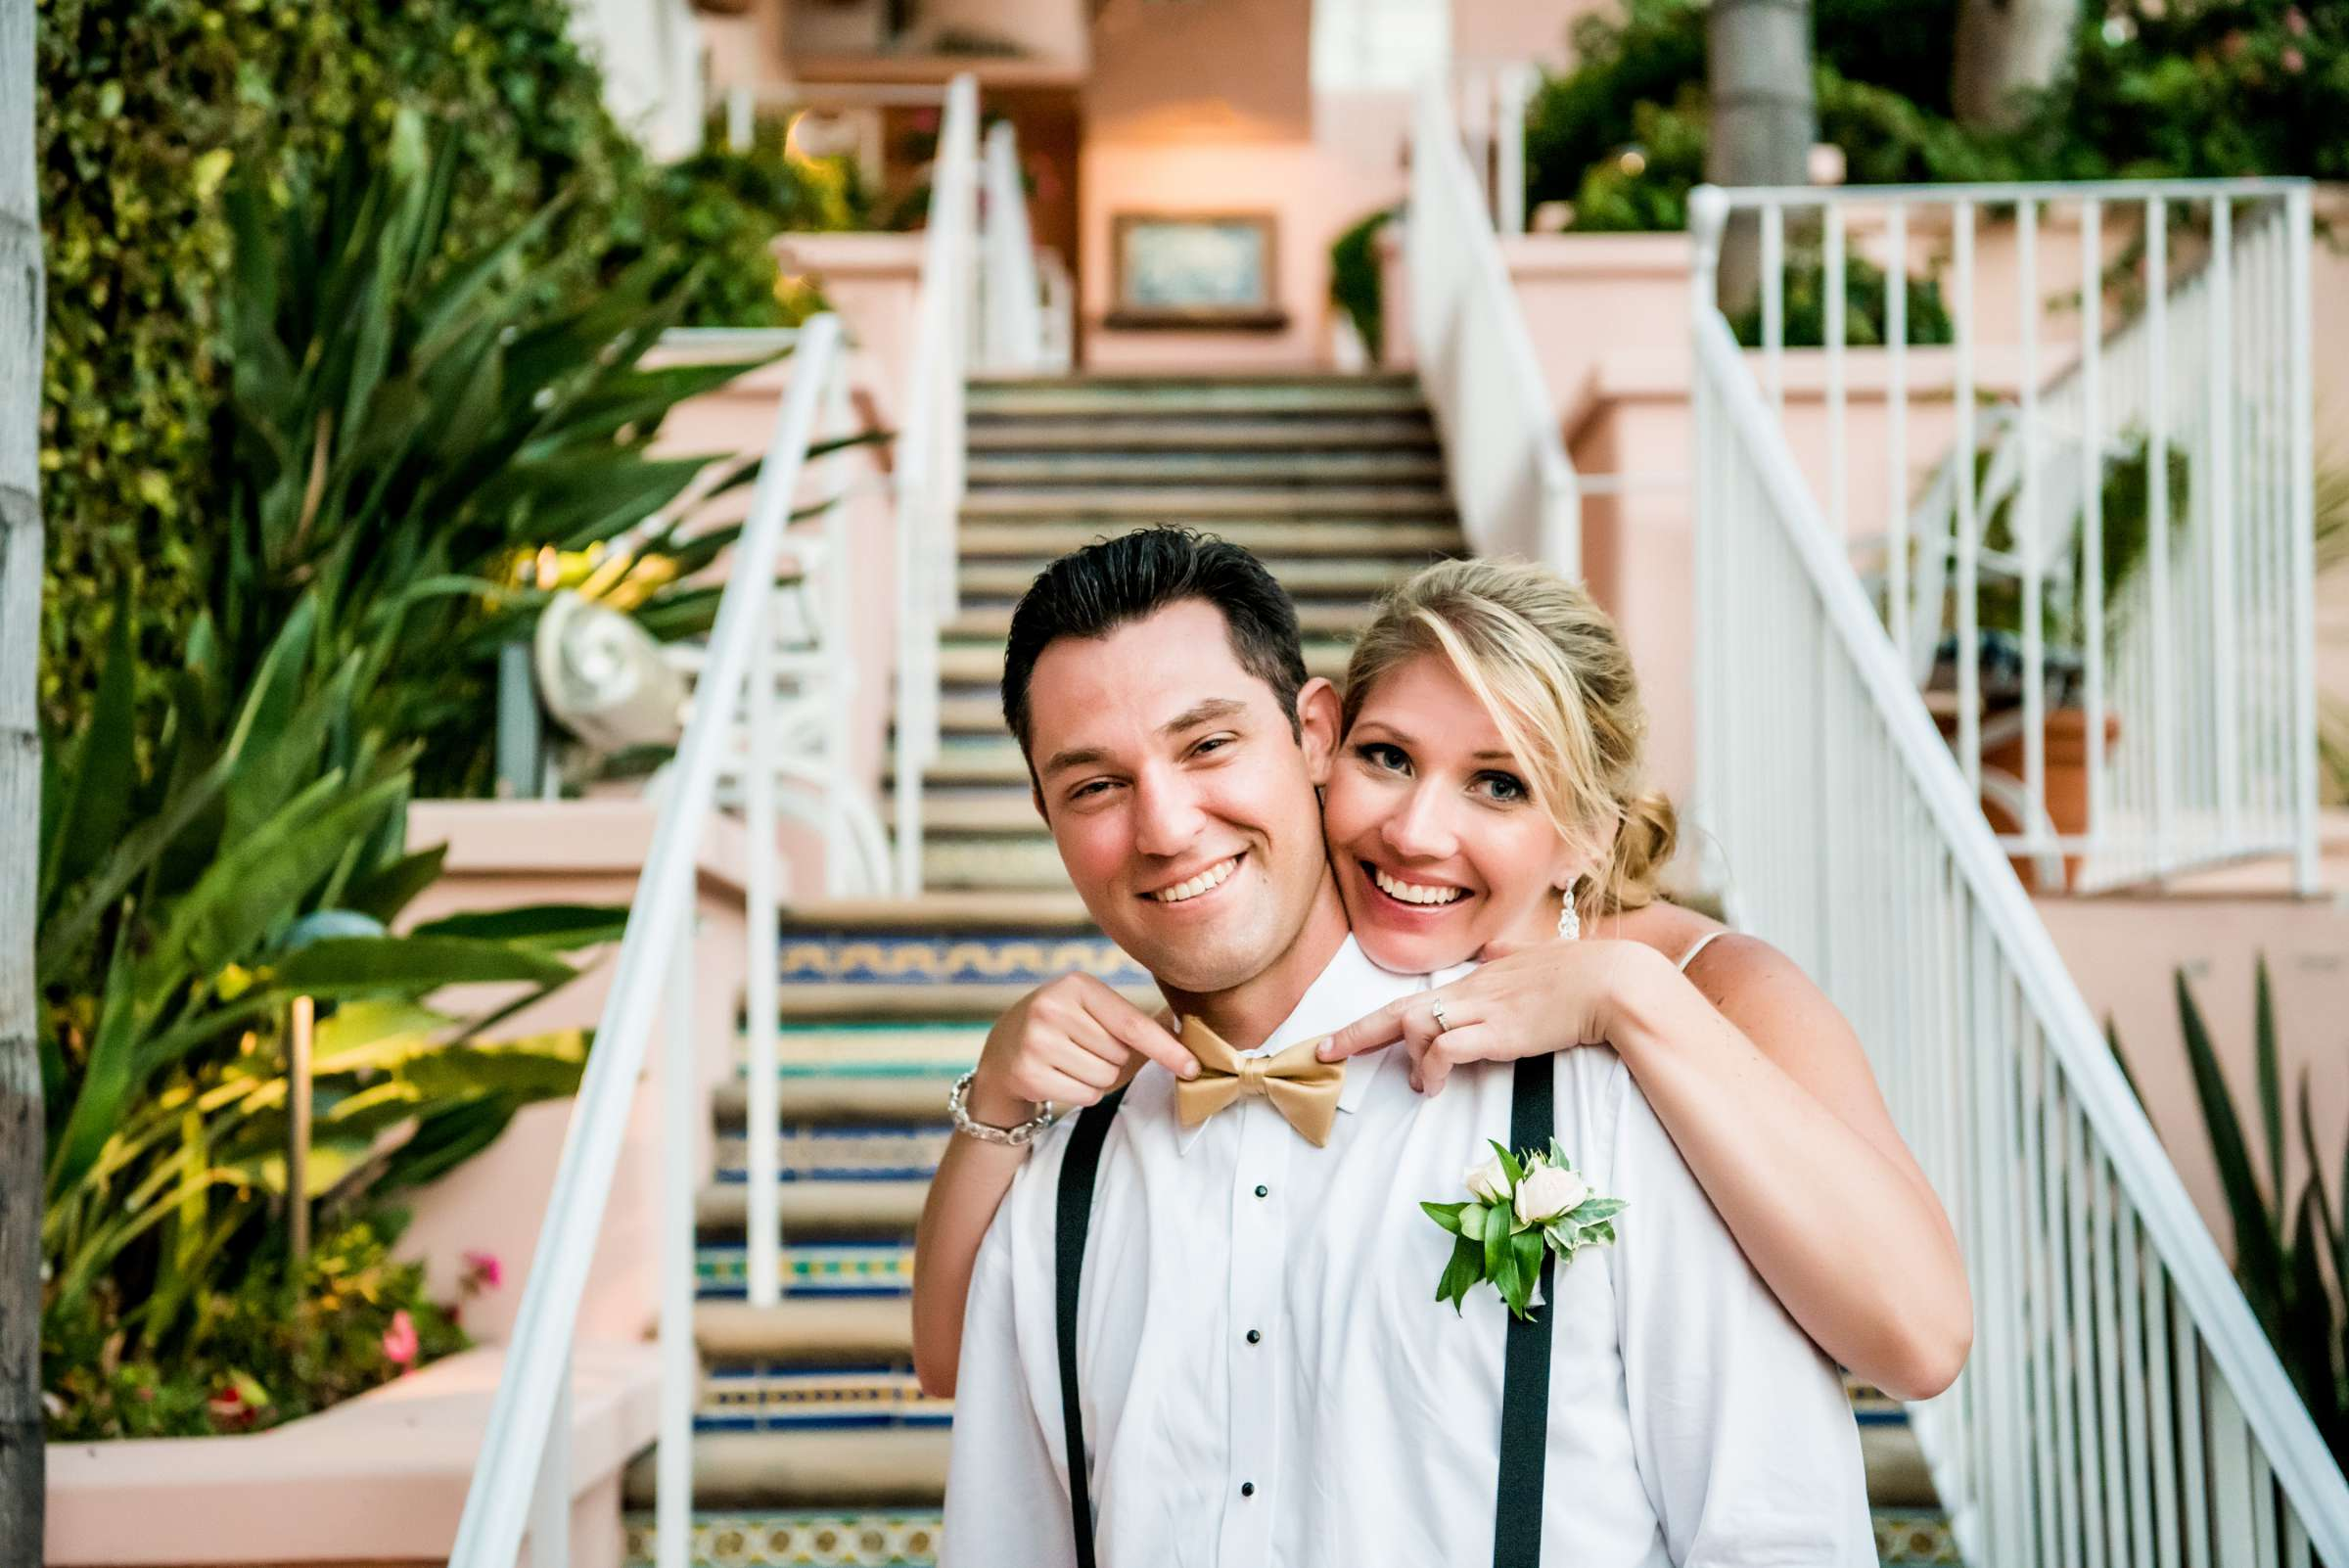 La Valencia Wedding, Erin and Eric Wedding Photo #248957 by True Photography